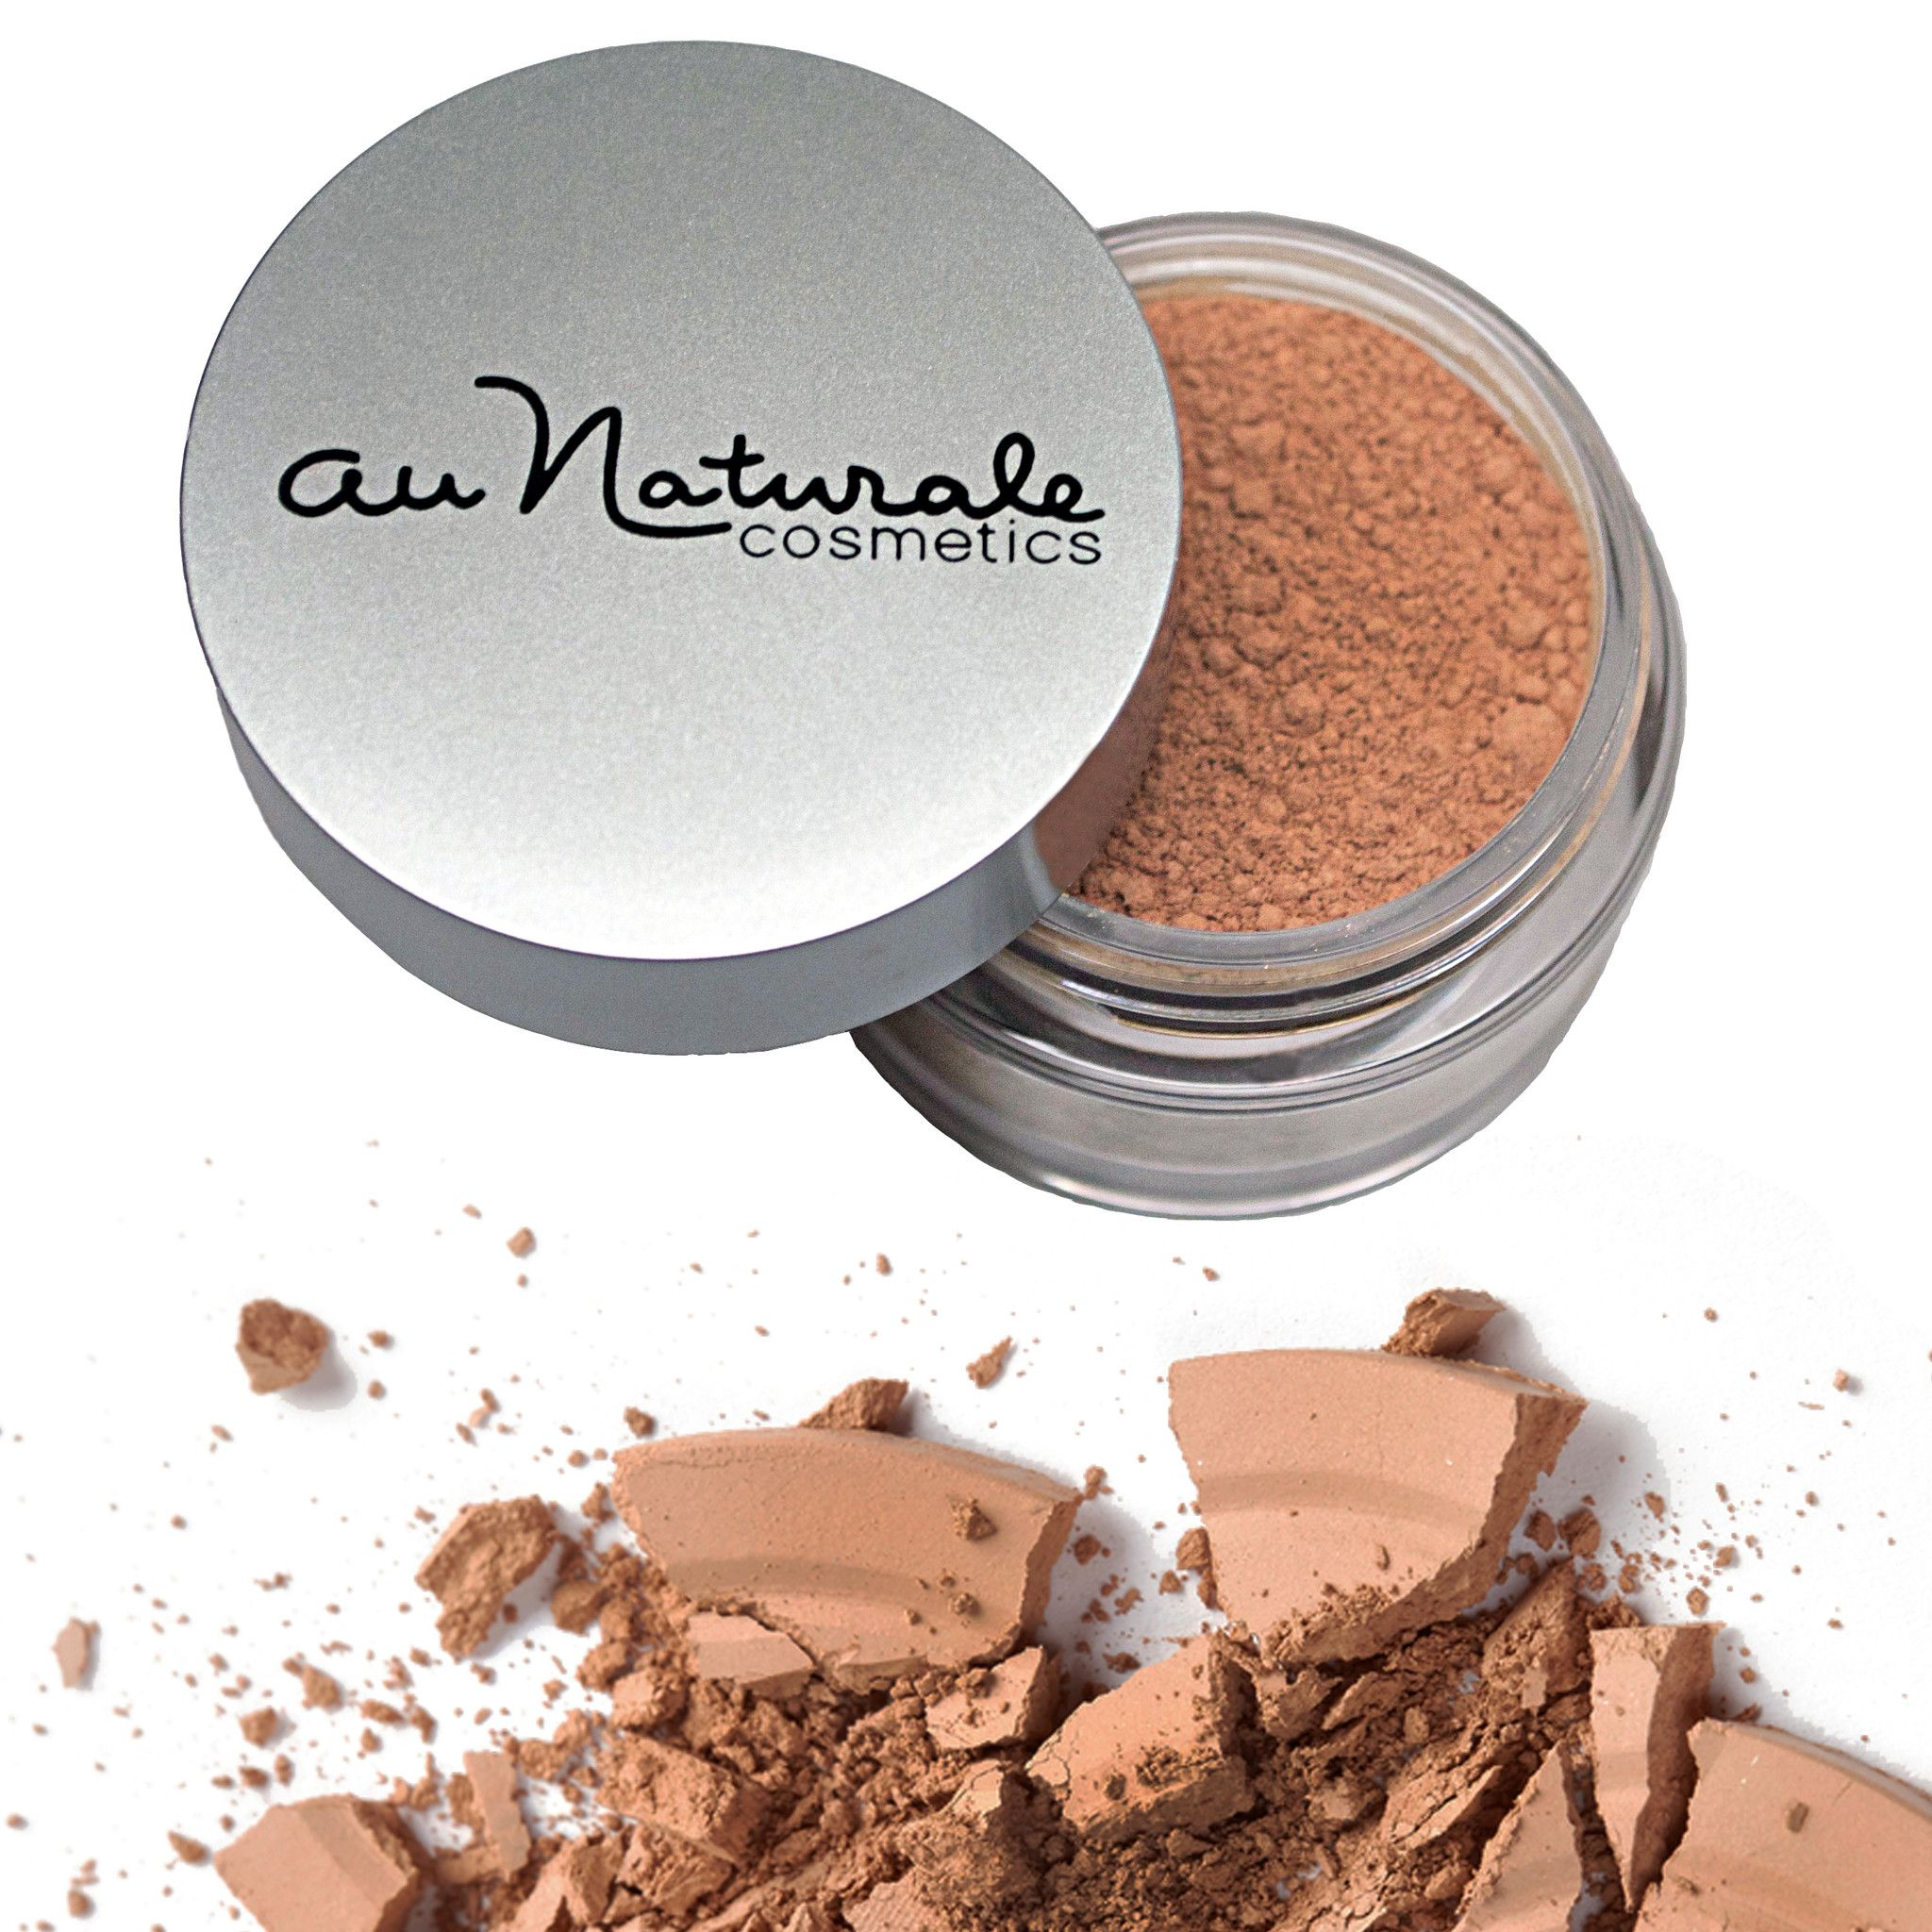 Powder Foundation in Cali Au Naturale Cosmetics Au